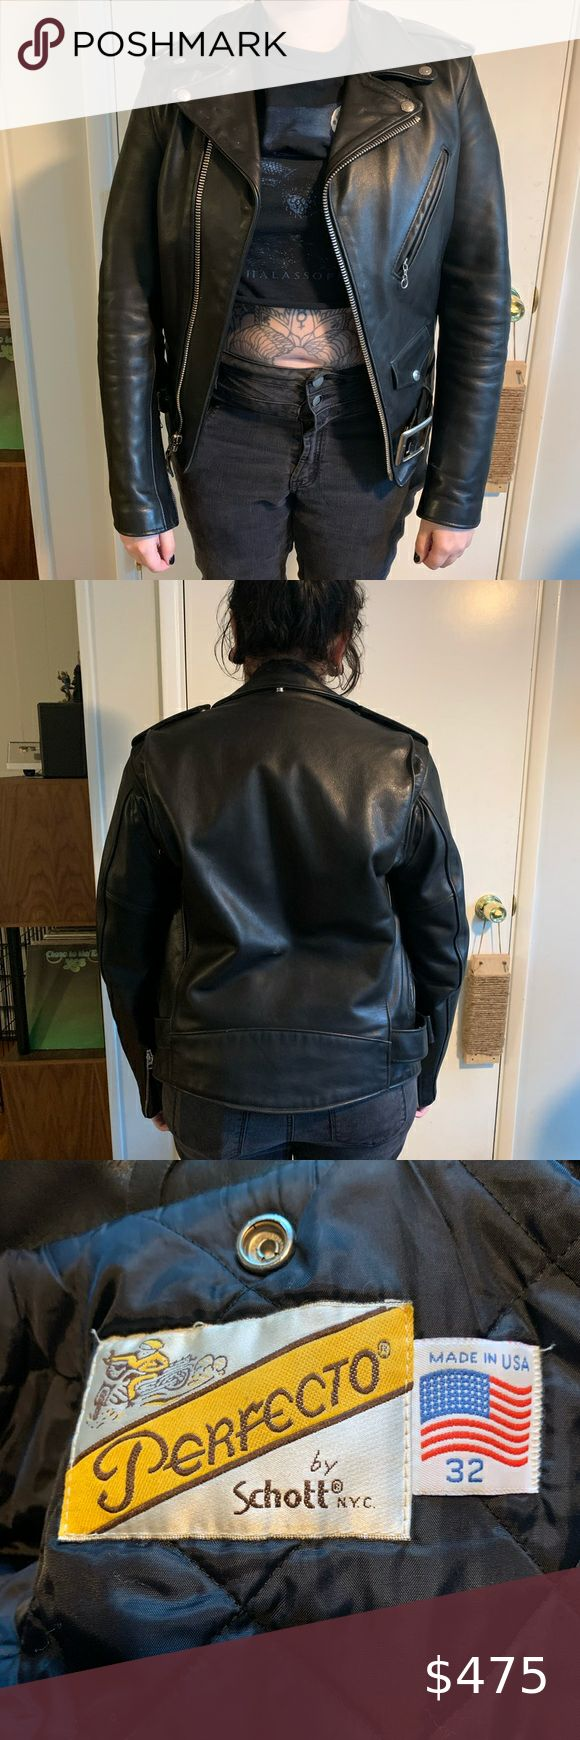 Schott Perfecto 118 Size 32 Super Clean Jacket Have Owned For 5 Years Purchased From The Schott Store In La Size 32 Min Leather Jacket Jackets Mens Jackets [ 1740 x 580 Pixel ]